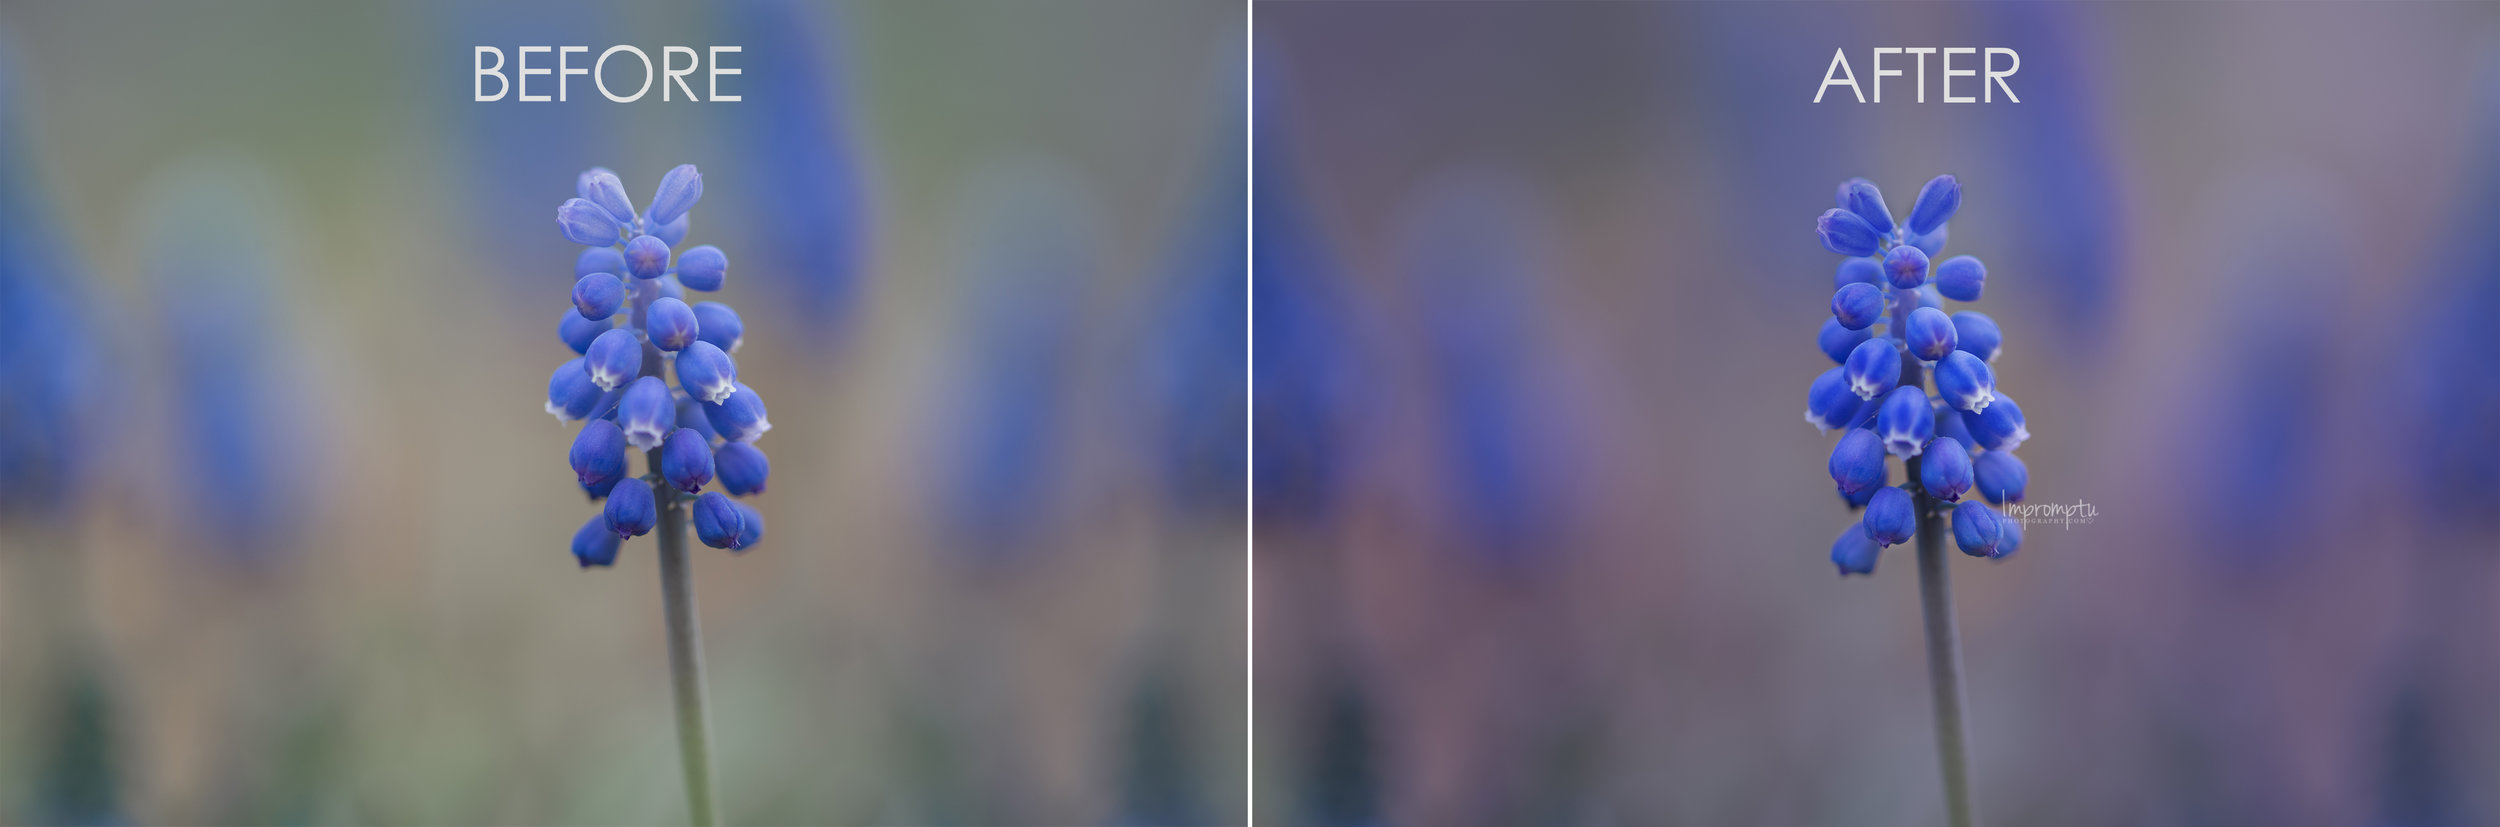 Before and After Horizontal BlueBell.jpg